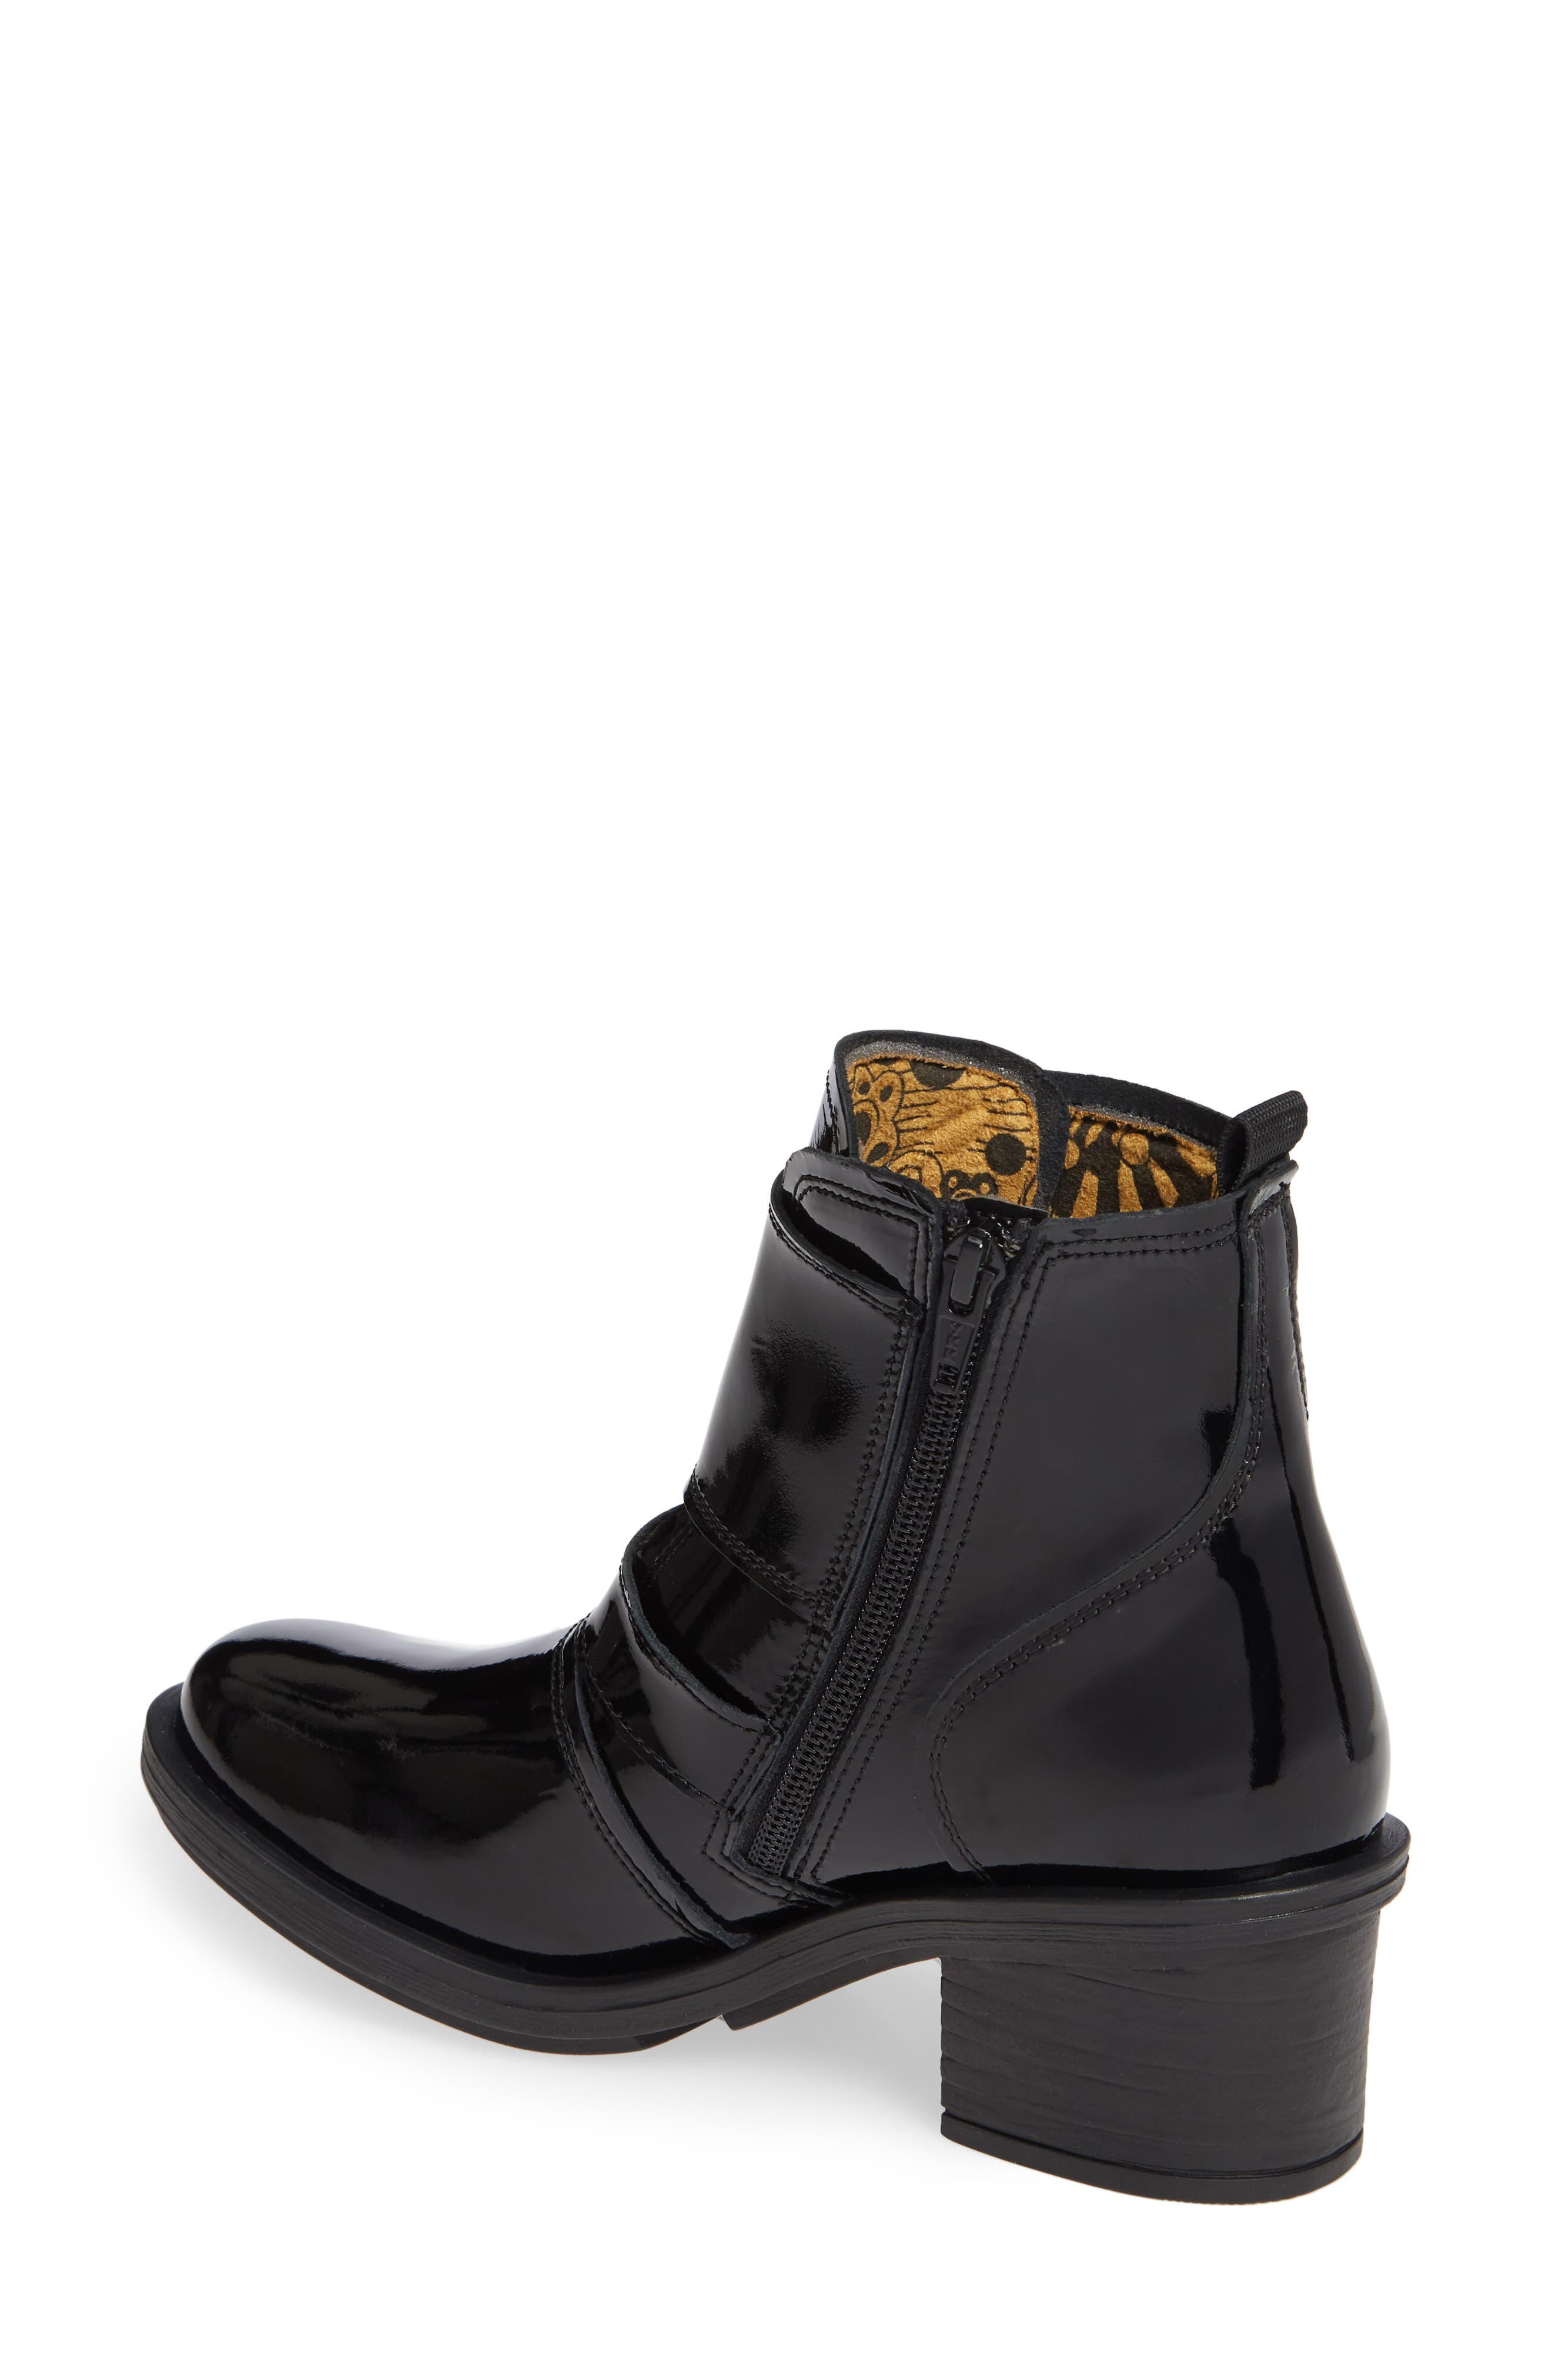 FLY LONDON, Crip Buckle Boot, Alternate thumbnail 2, color, BLACK PATENT LEATHER